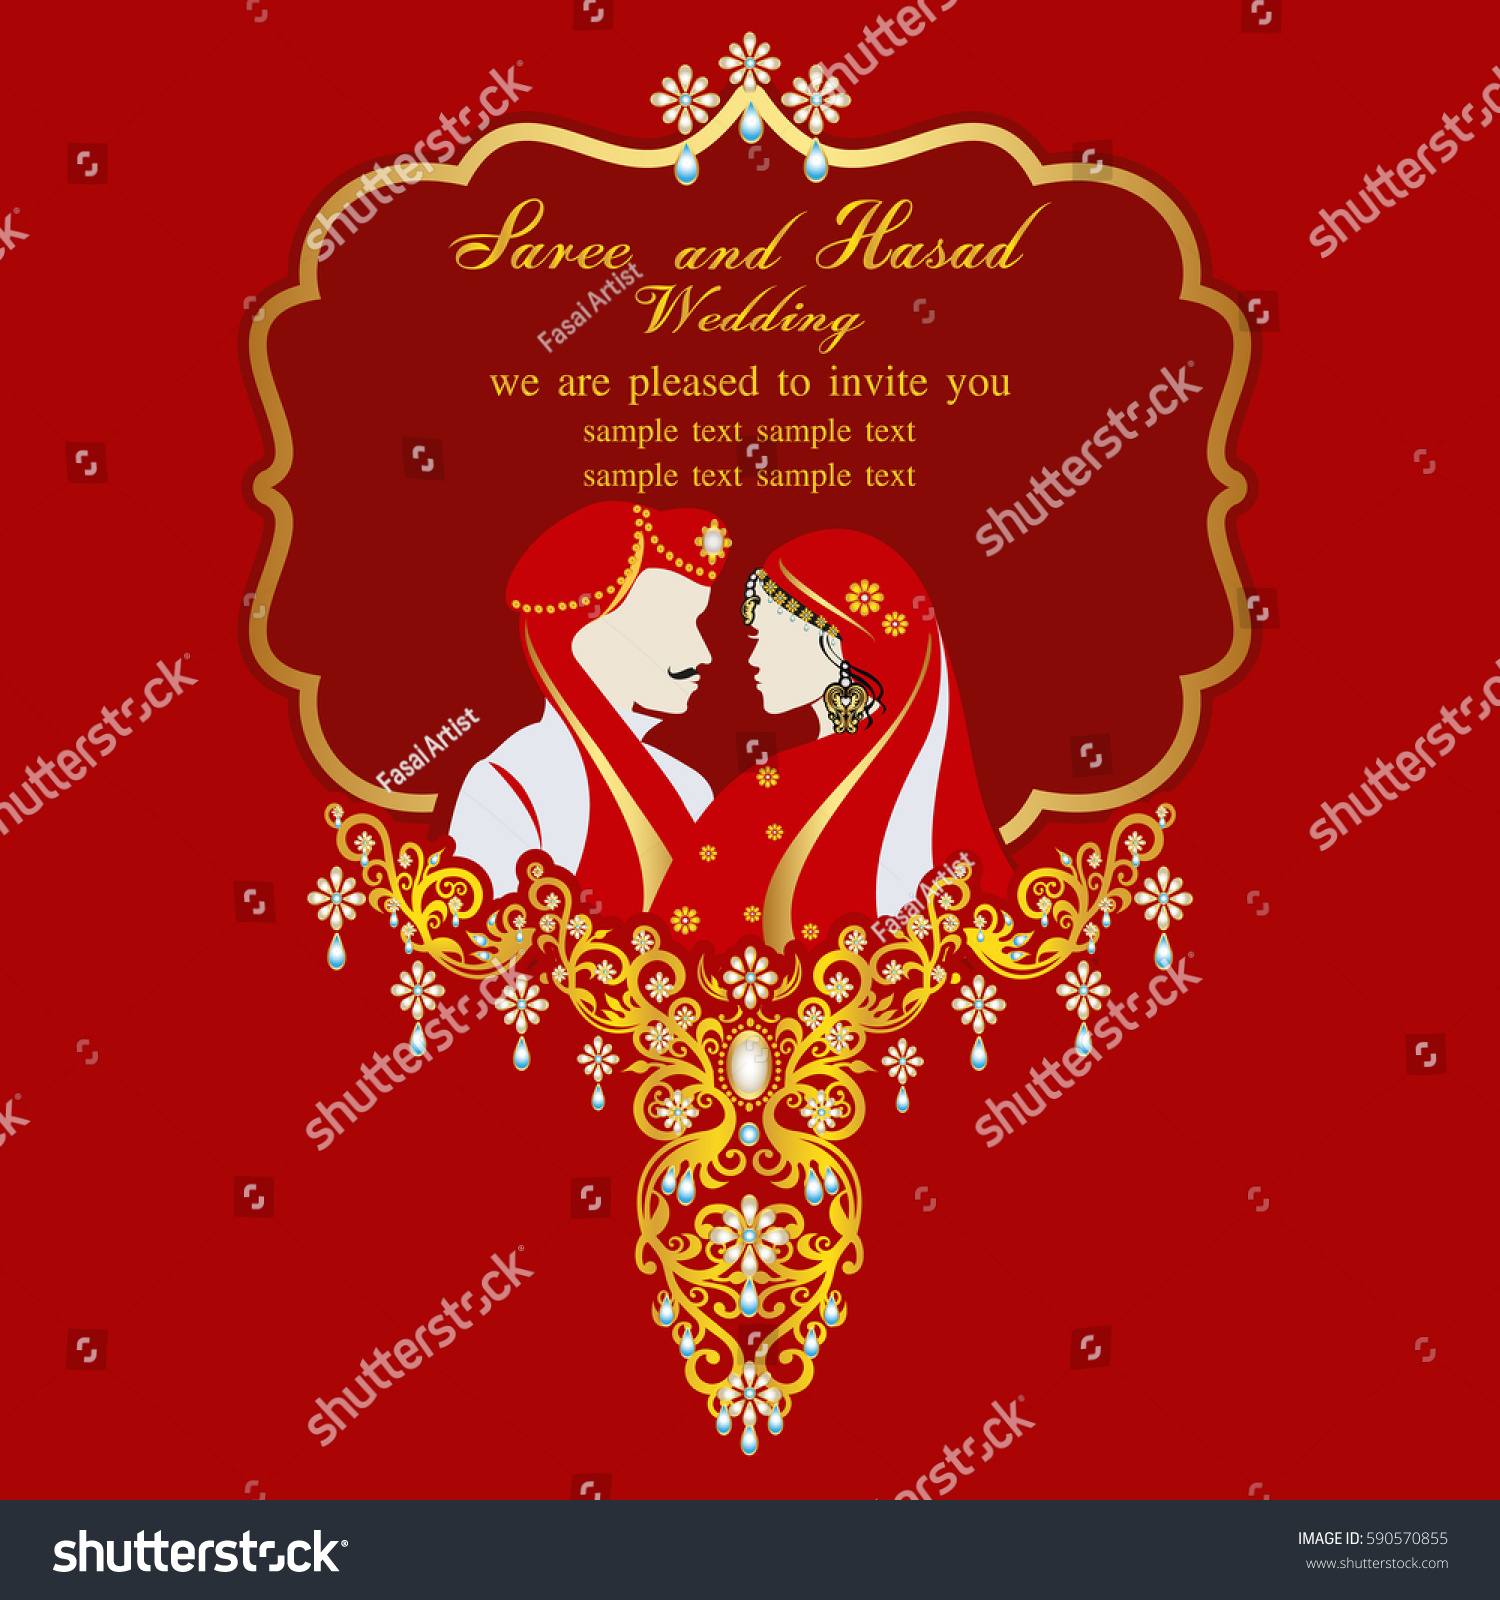 Indian Wedding Invitation Card Abstract Background Stock Photo ...